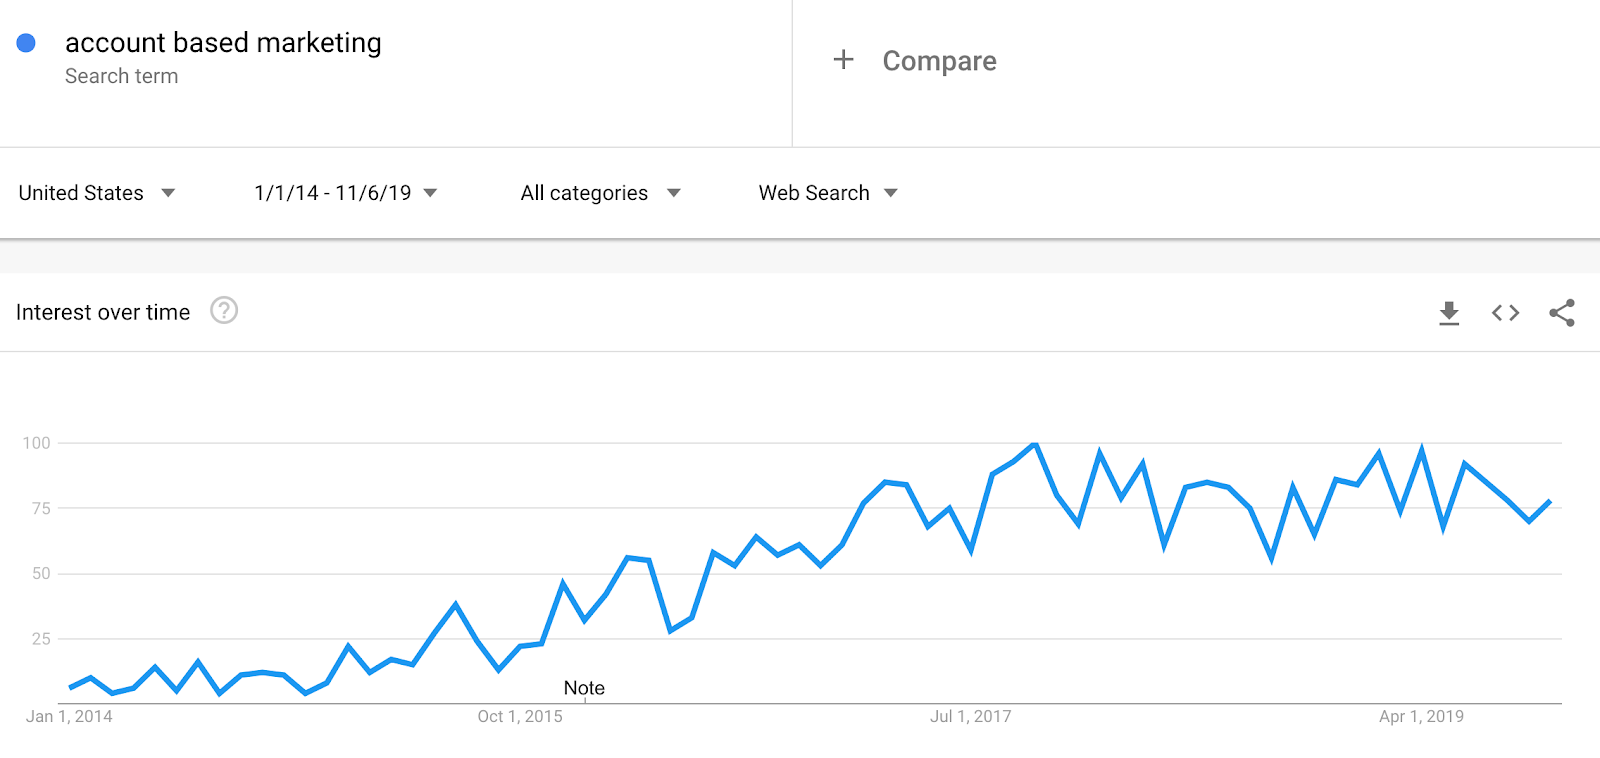 Account-Based Marketing Google Trends Data